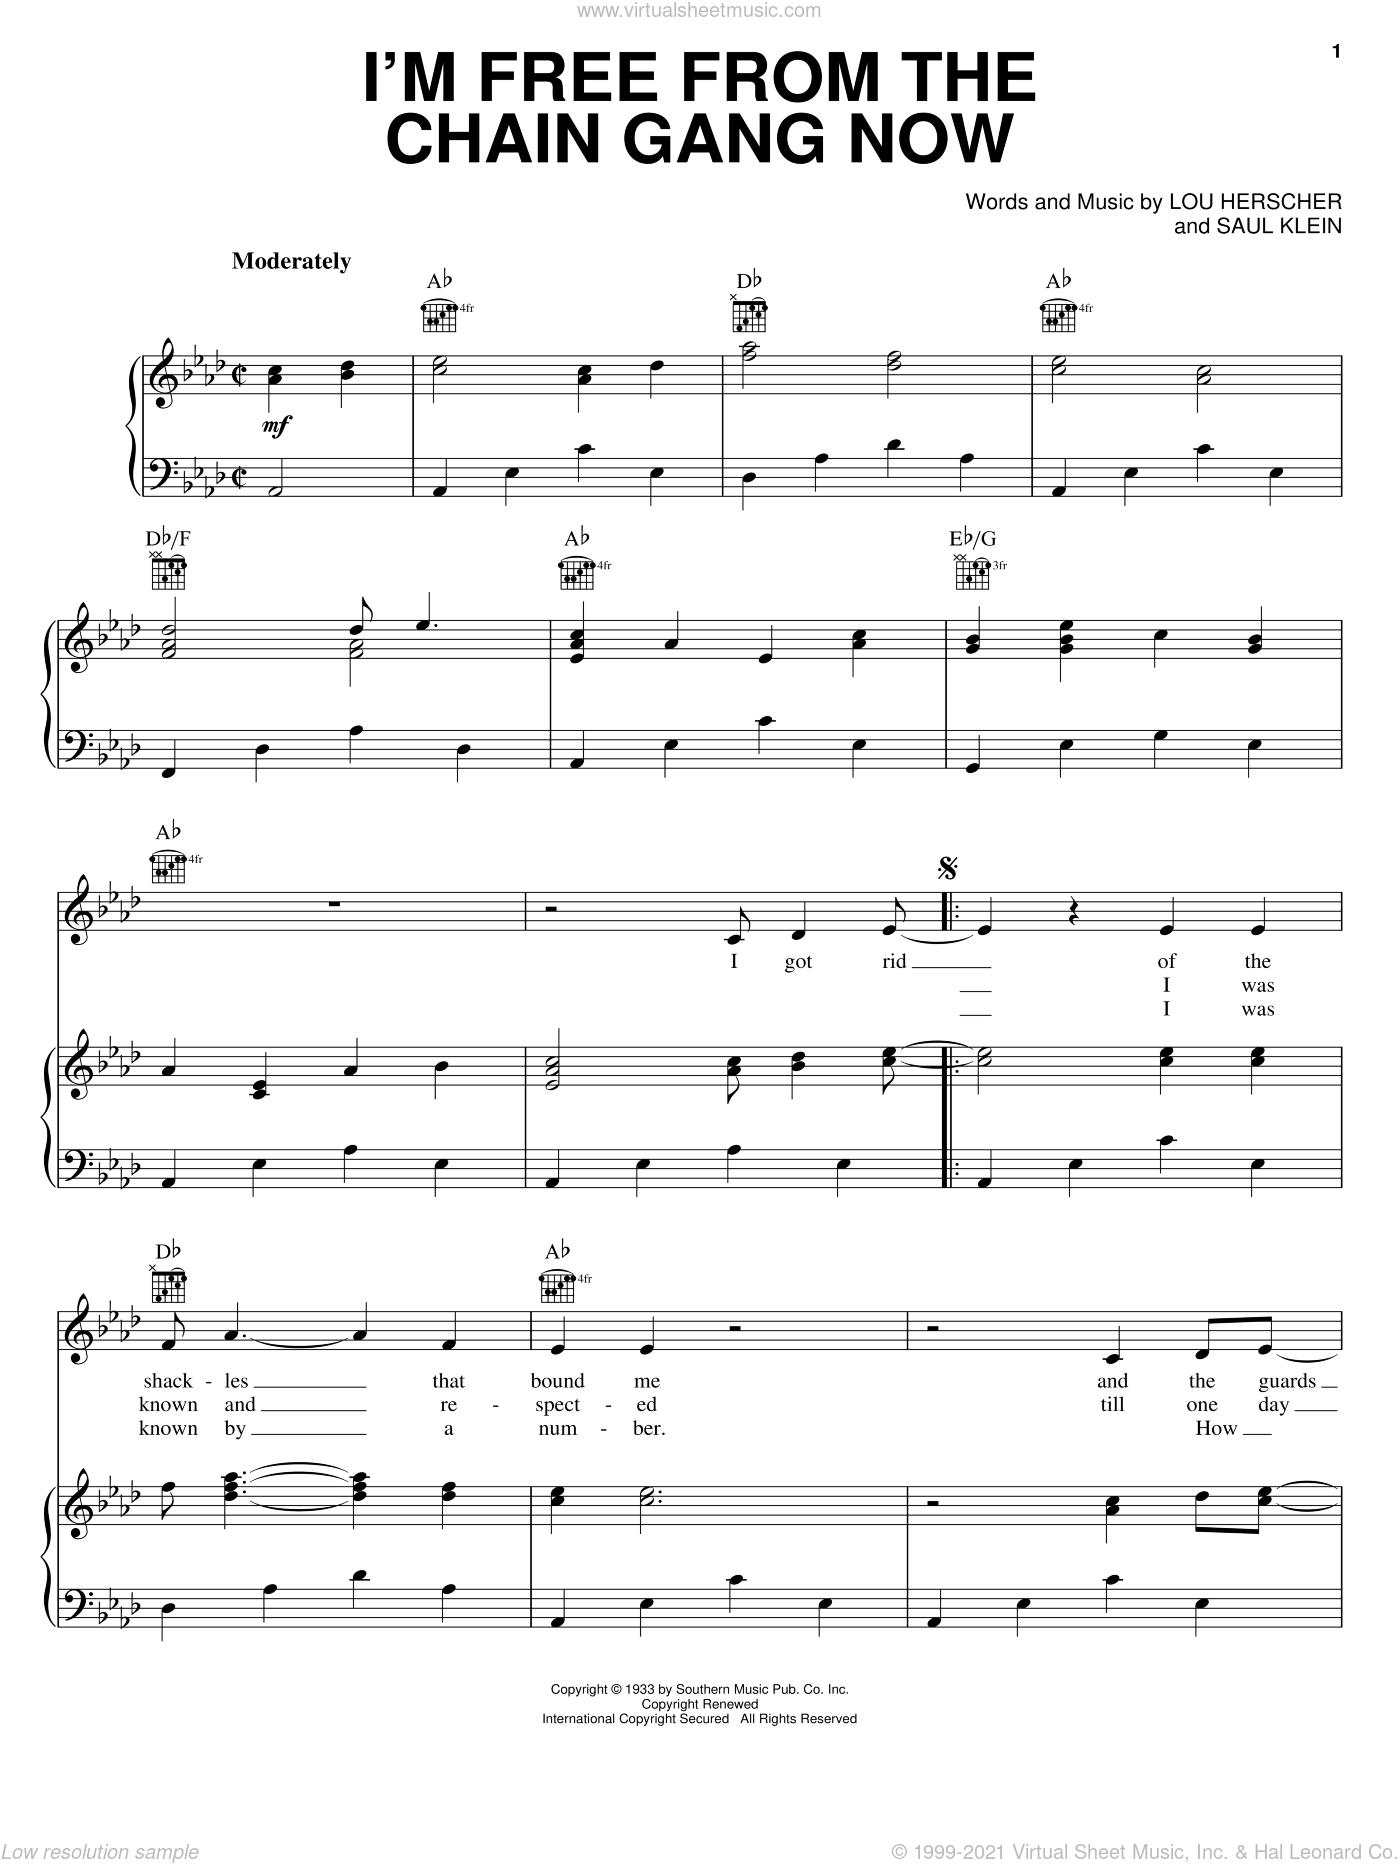 I'm Free From The Chain Gang Now sheet music for voice, piano or guitar by Saul Klein